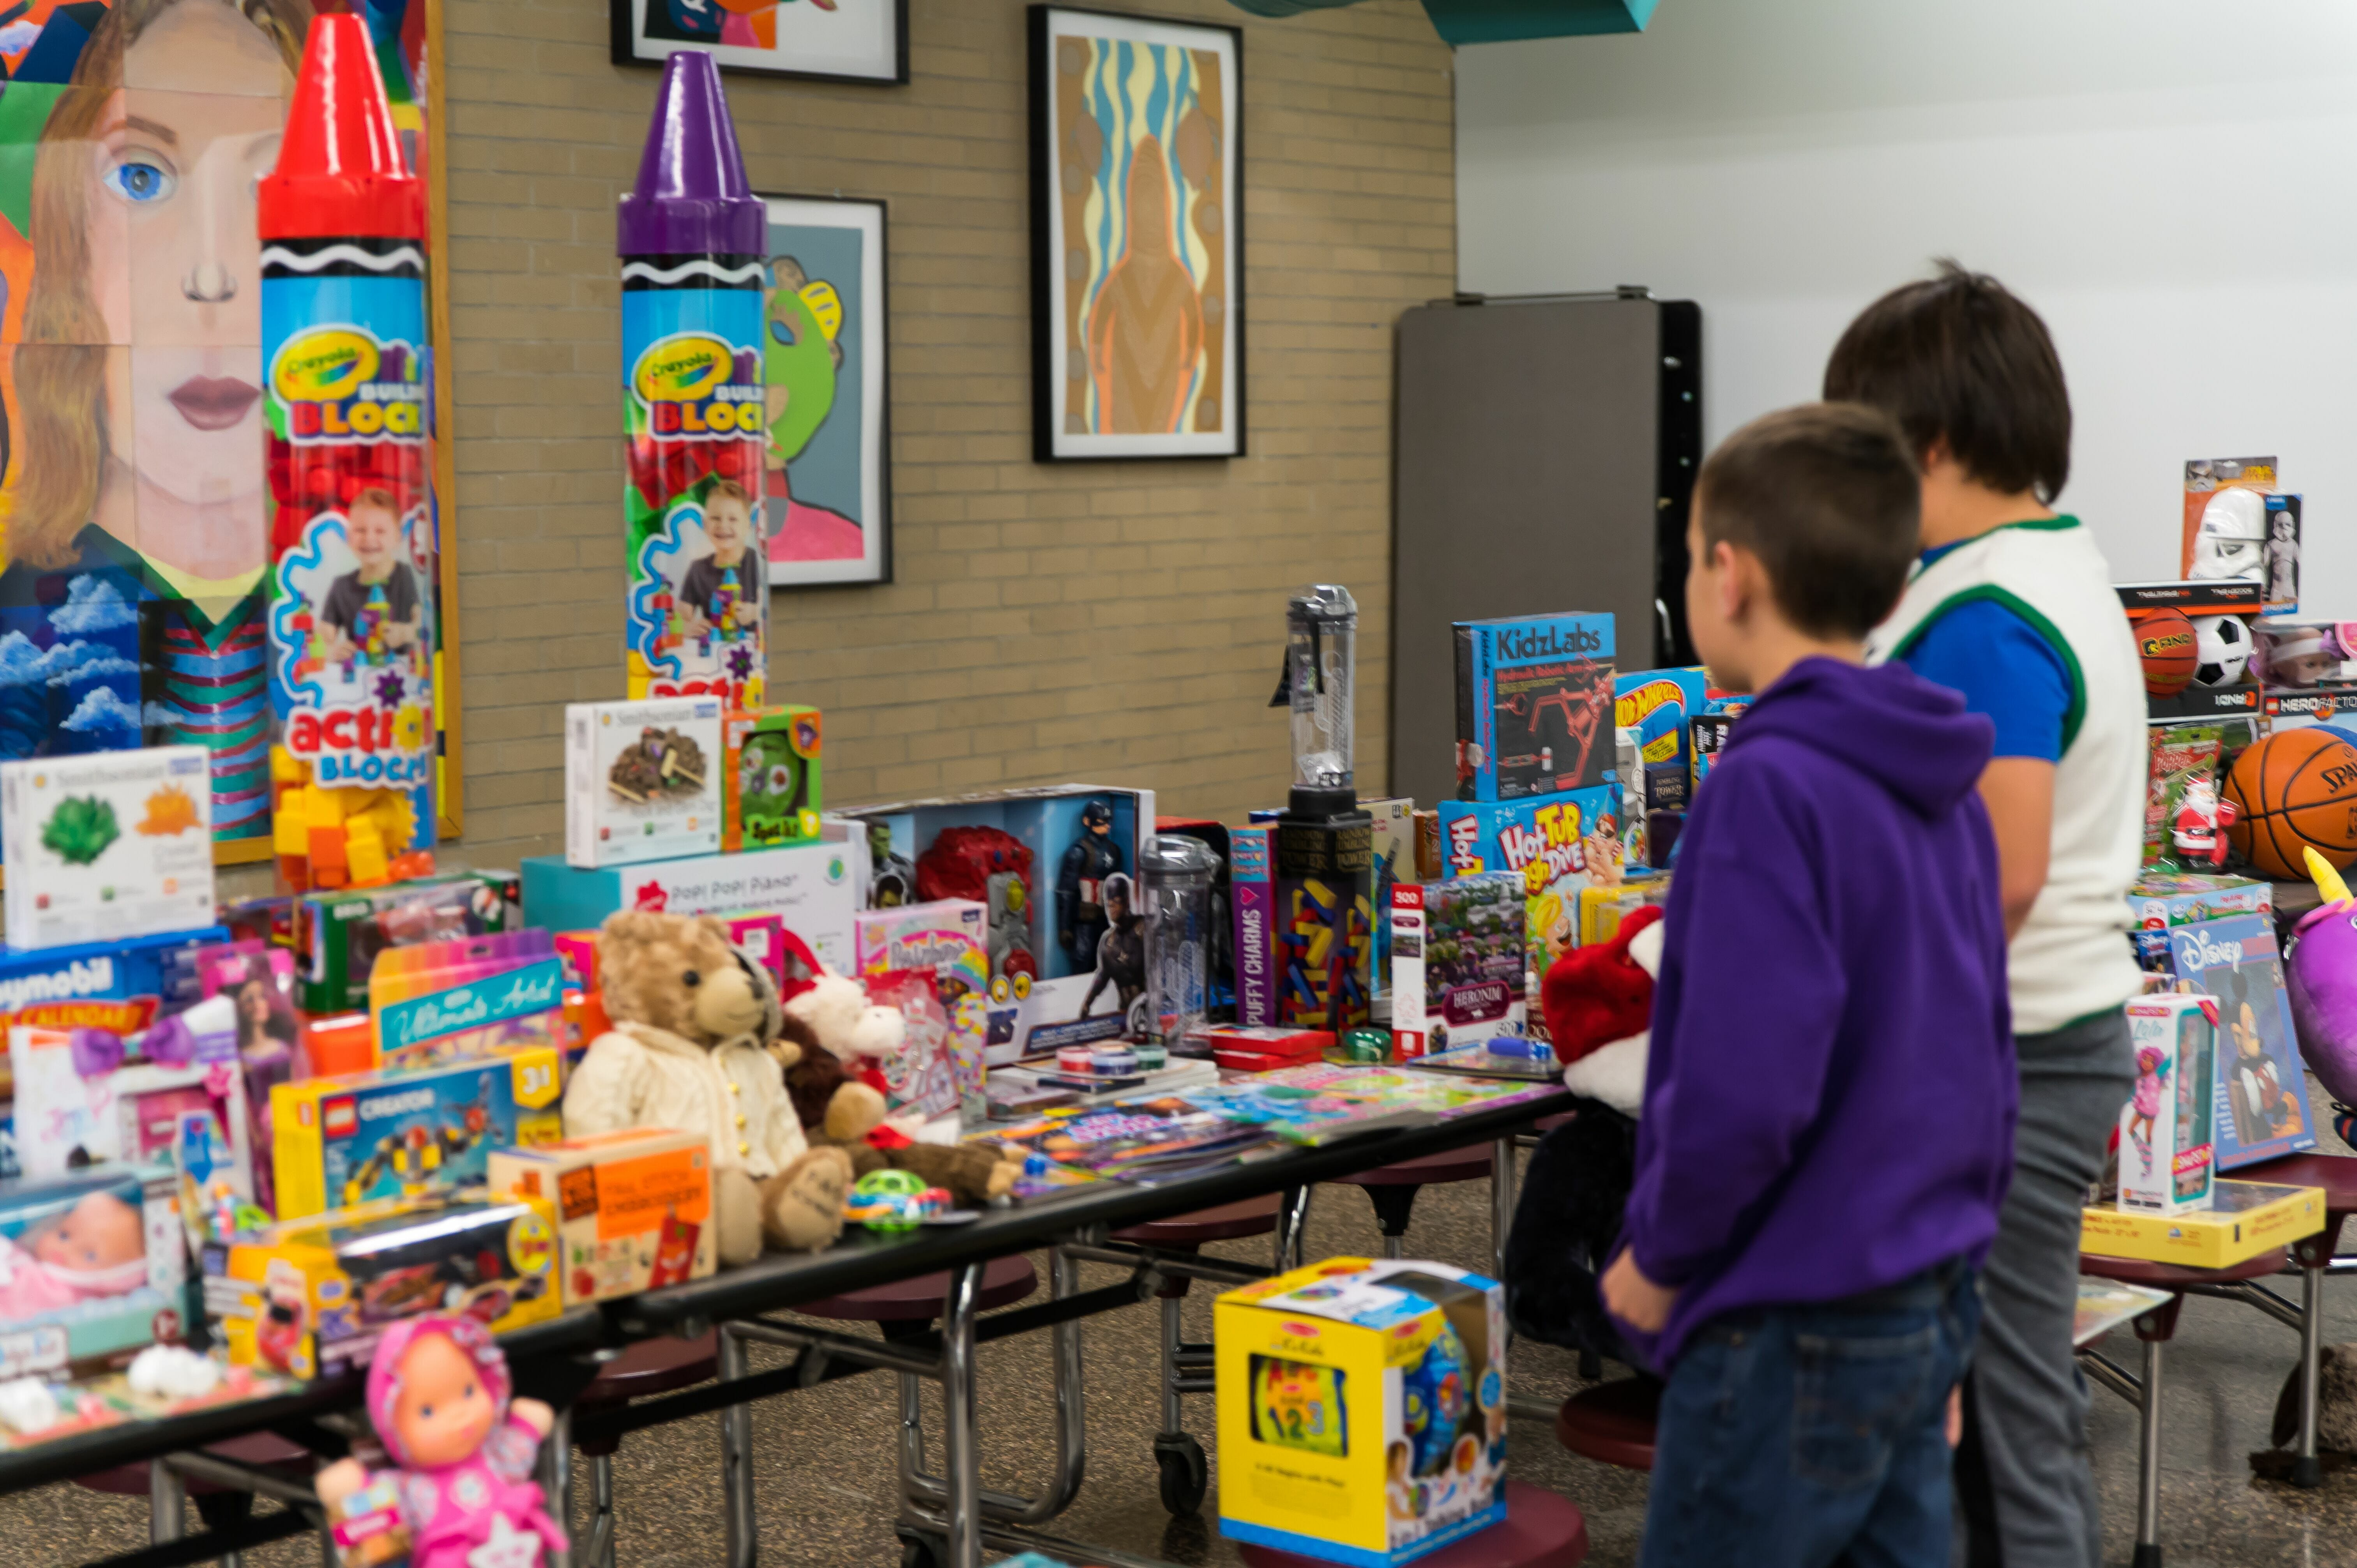 Two boys look at holiday presents for St. Catherine's children.